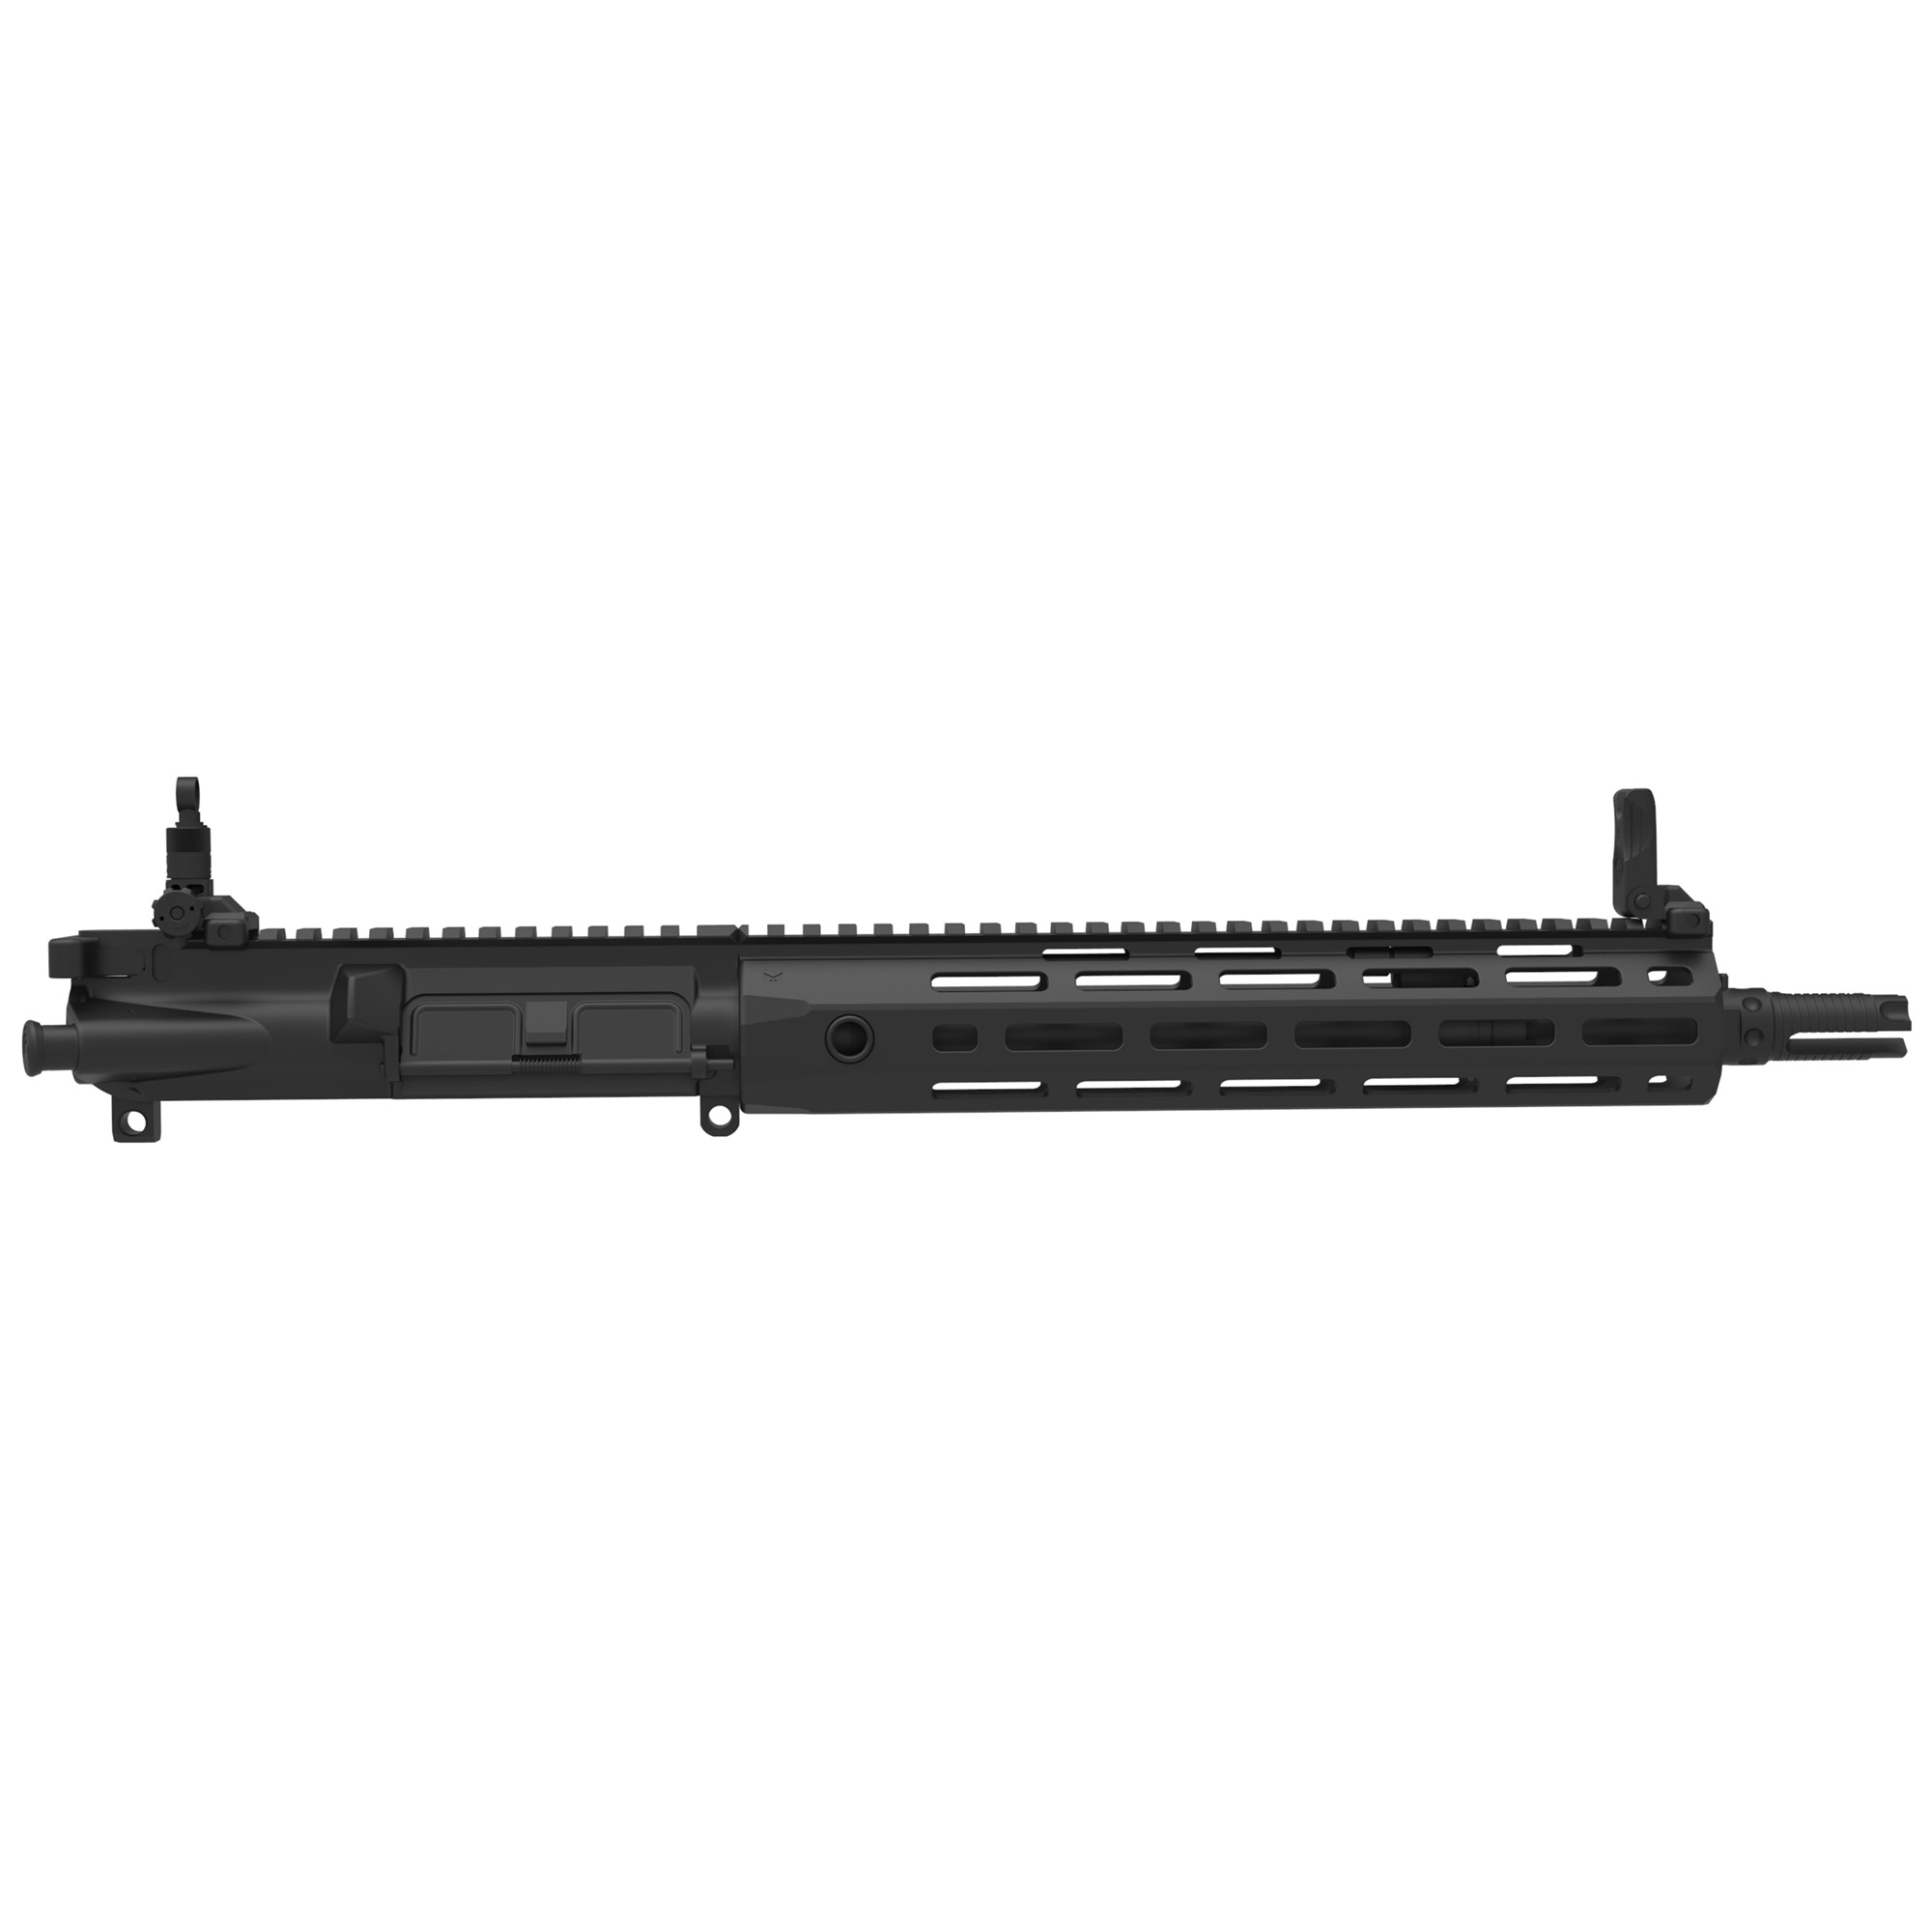 """The SR-15 E3 Mod 2 series' 5.56 mm NATO barrel is manufactured for military grade durability"""" and is free-floated inside a URX4 M-LOK handguard. An improved E3 round-lug bolt design both enhances function and increases bolt life far beyond the industry standard. The 5.56 mm 3-Prong Flash Eliminator interferes with propellant gas combustion forward of the muzzle to significantly reduce flash signature"""" will not ring upon firing or when struck"""" and is compatible with the Knight's line of 5.56 mm QDC Signature Reduction Devices."""